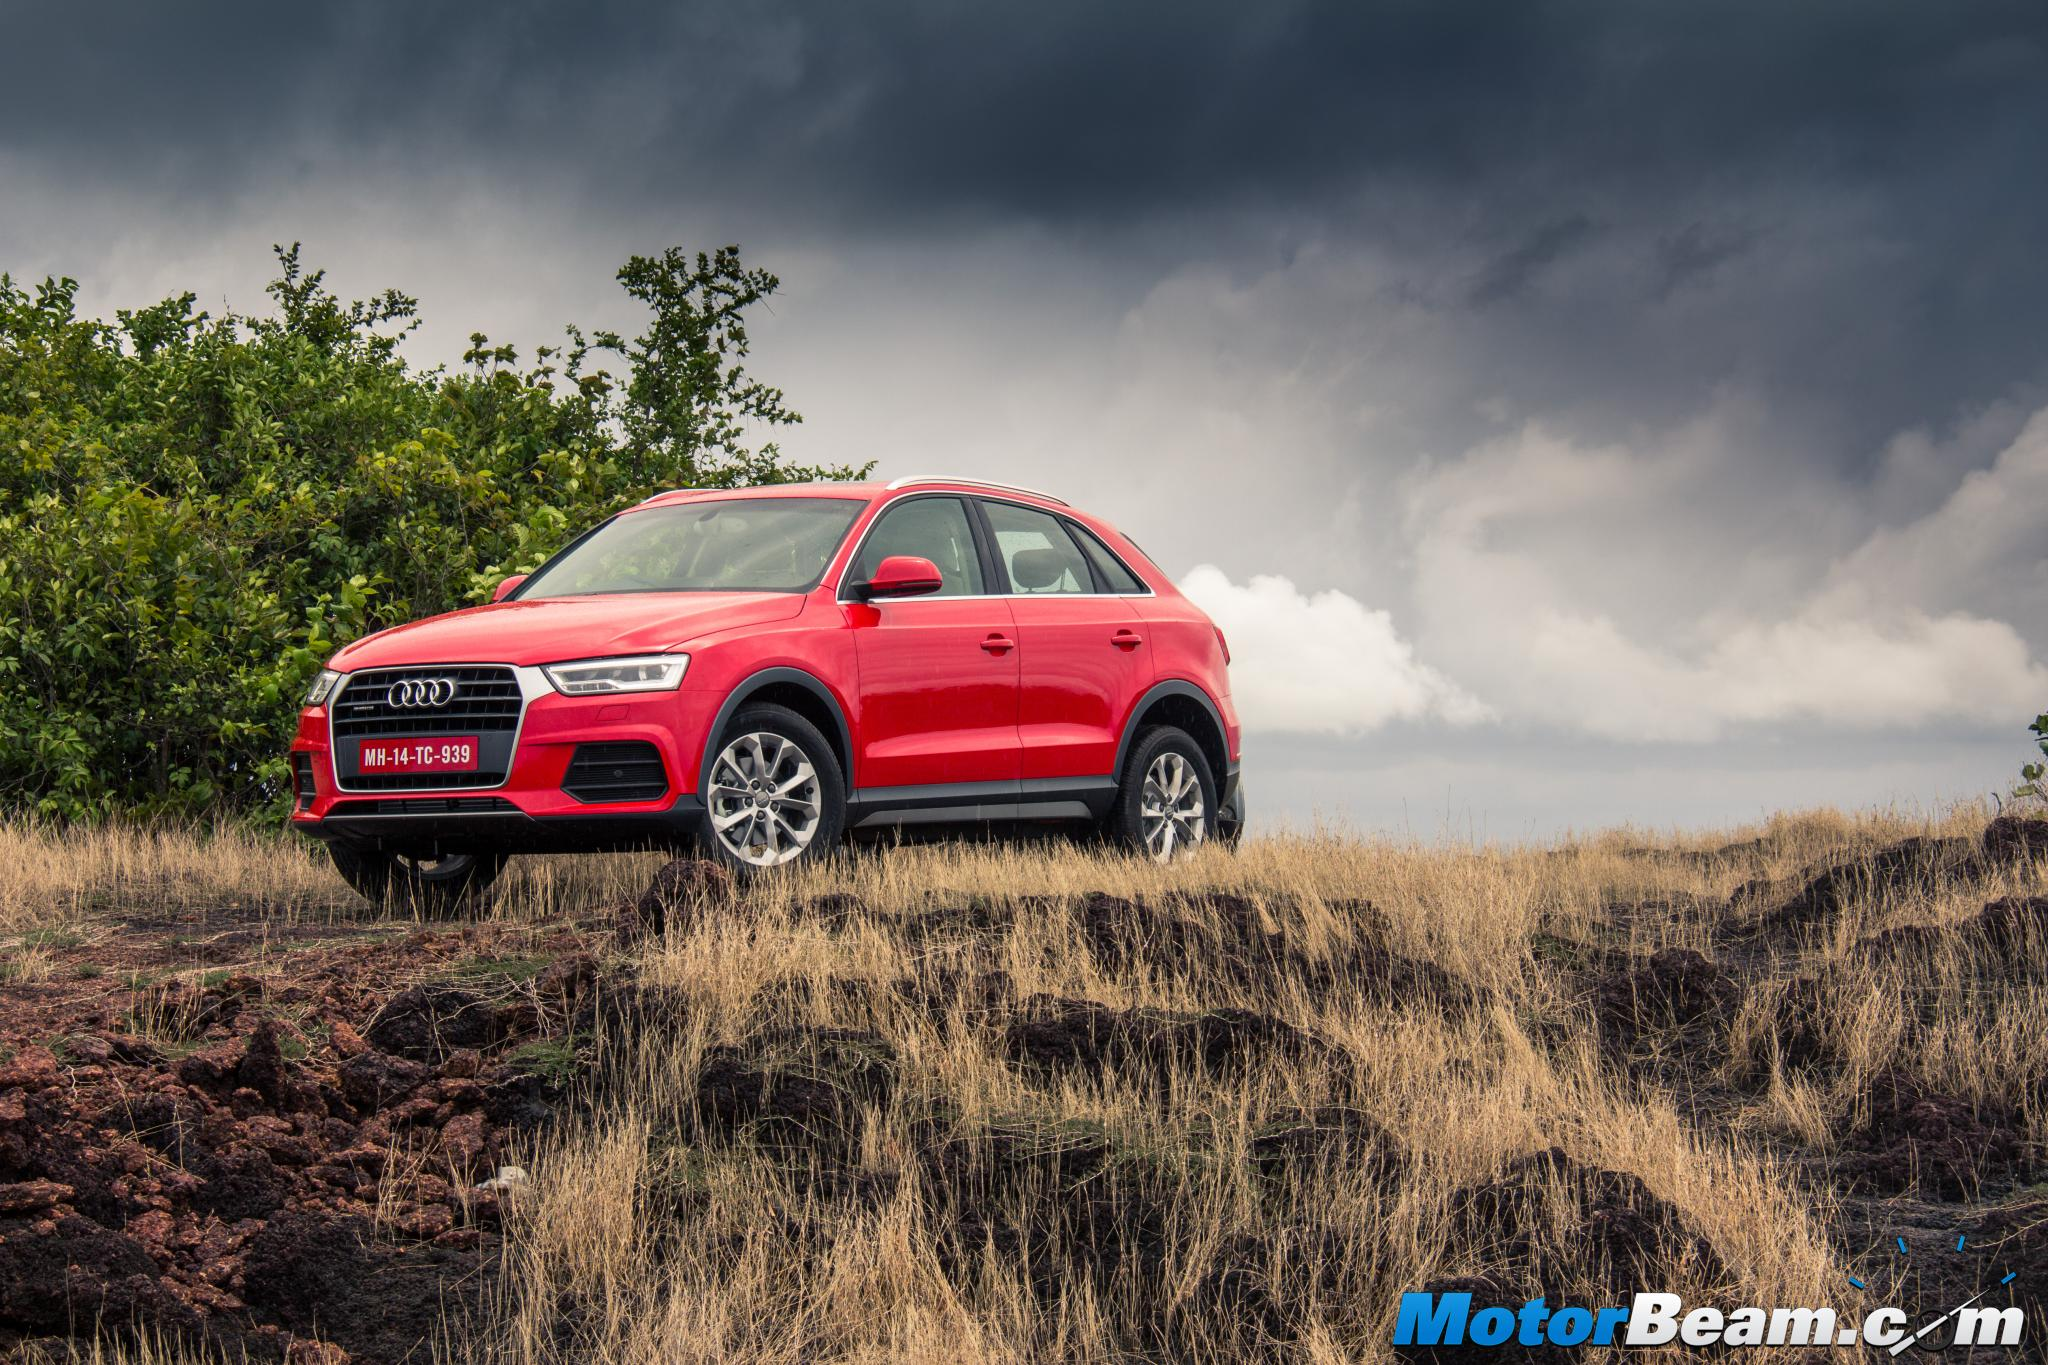 2015 Audi Q3 Facelift Test Drive Review